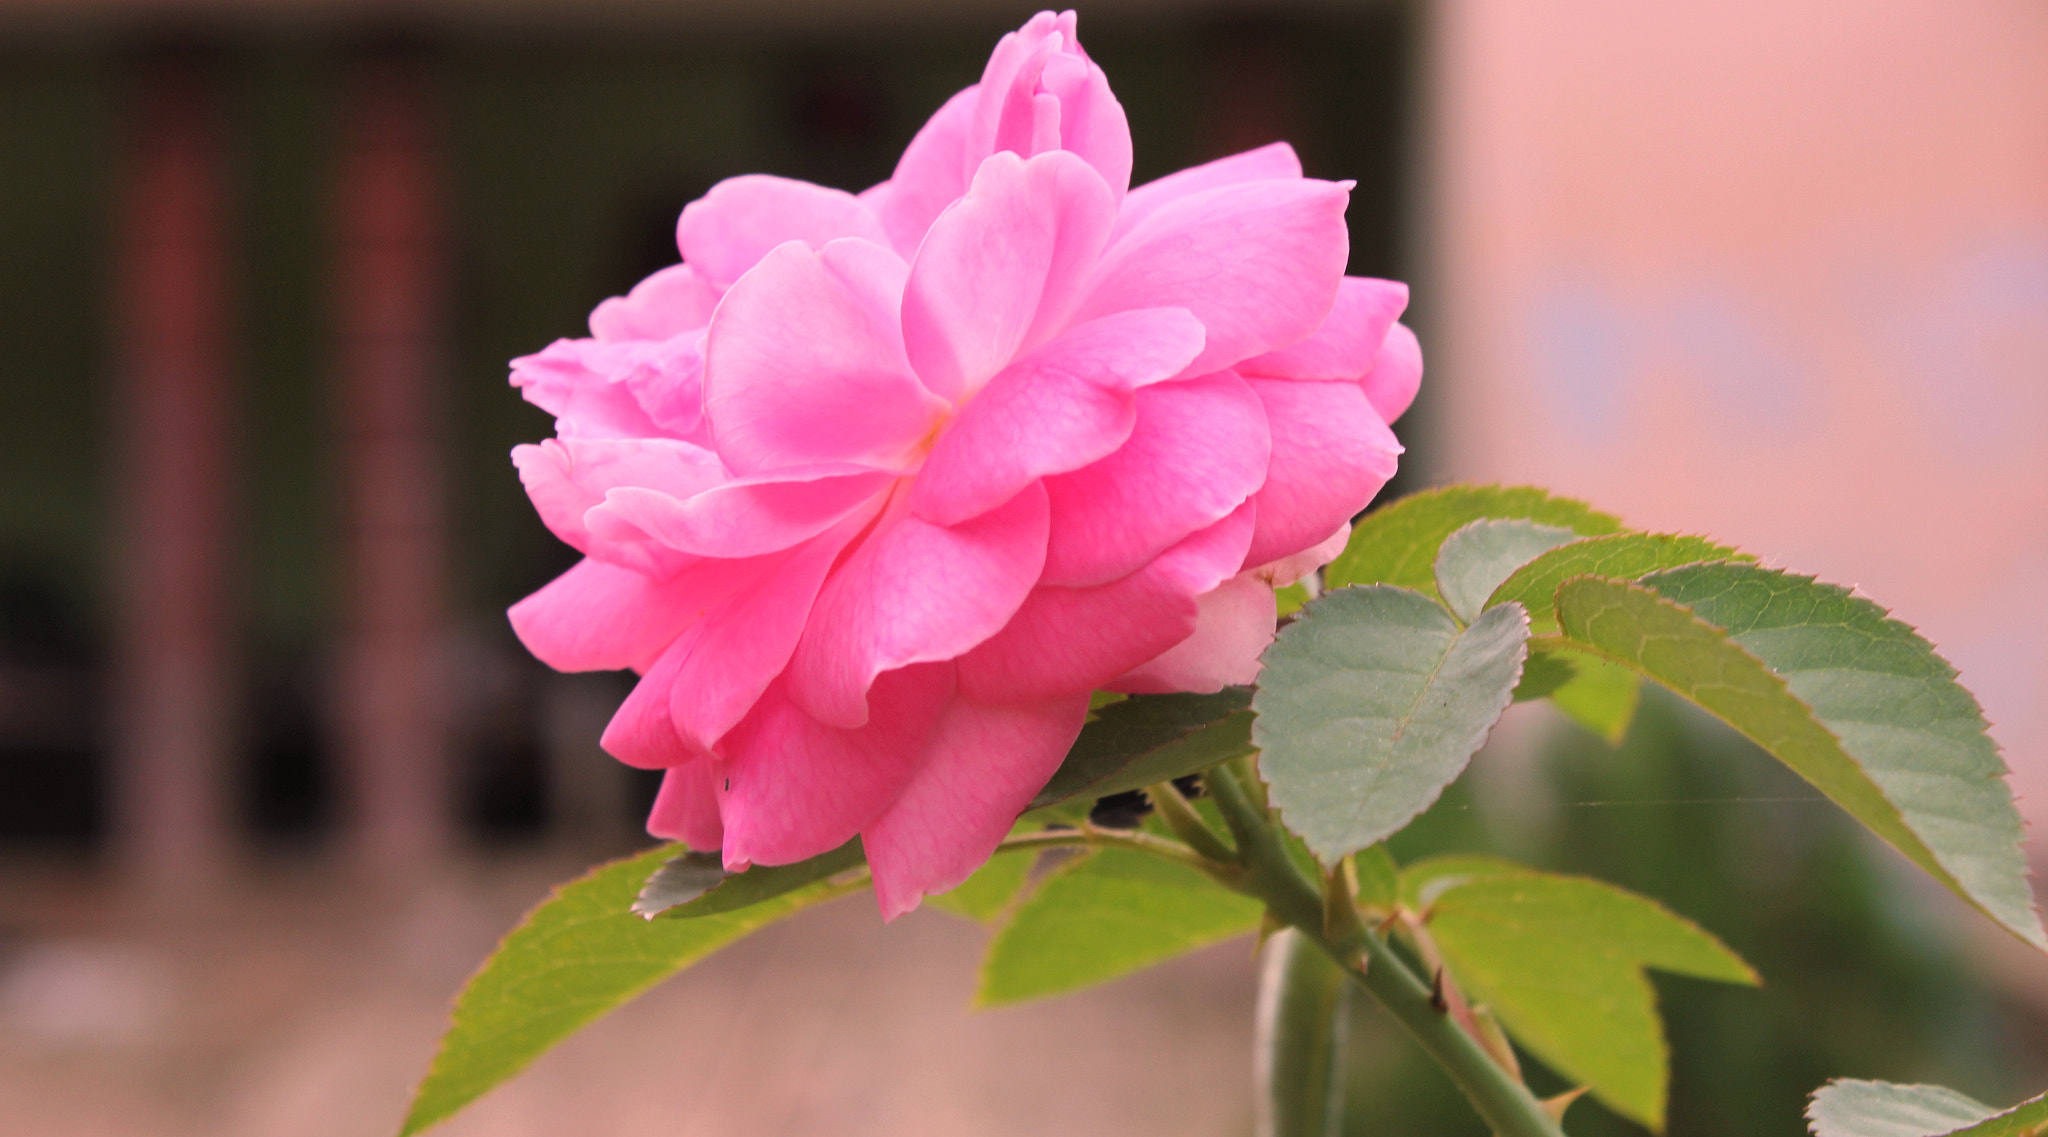 Photograph Rose by Krishna Mohan on 500px